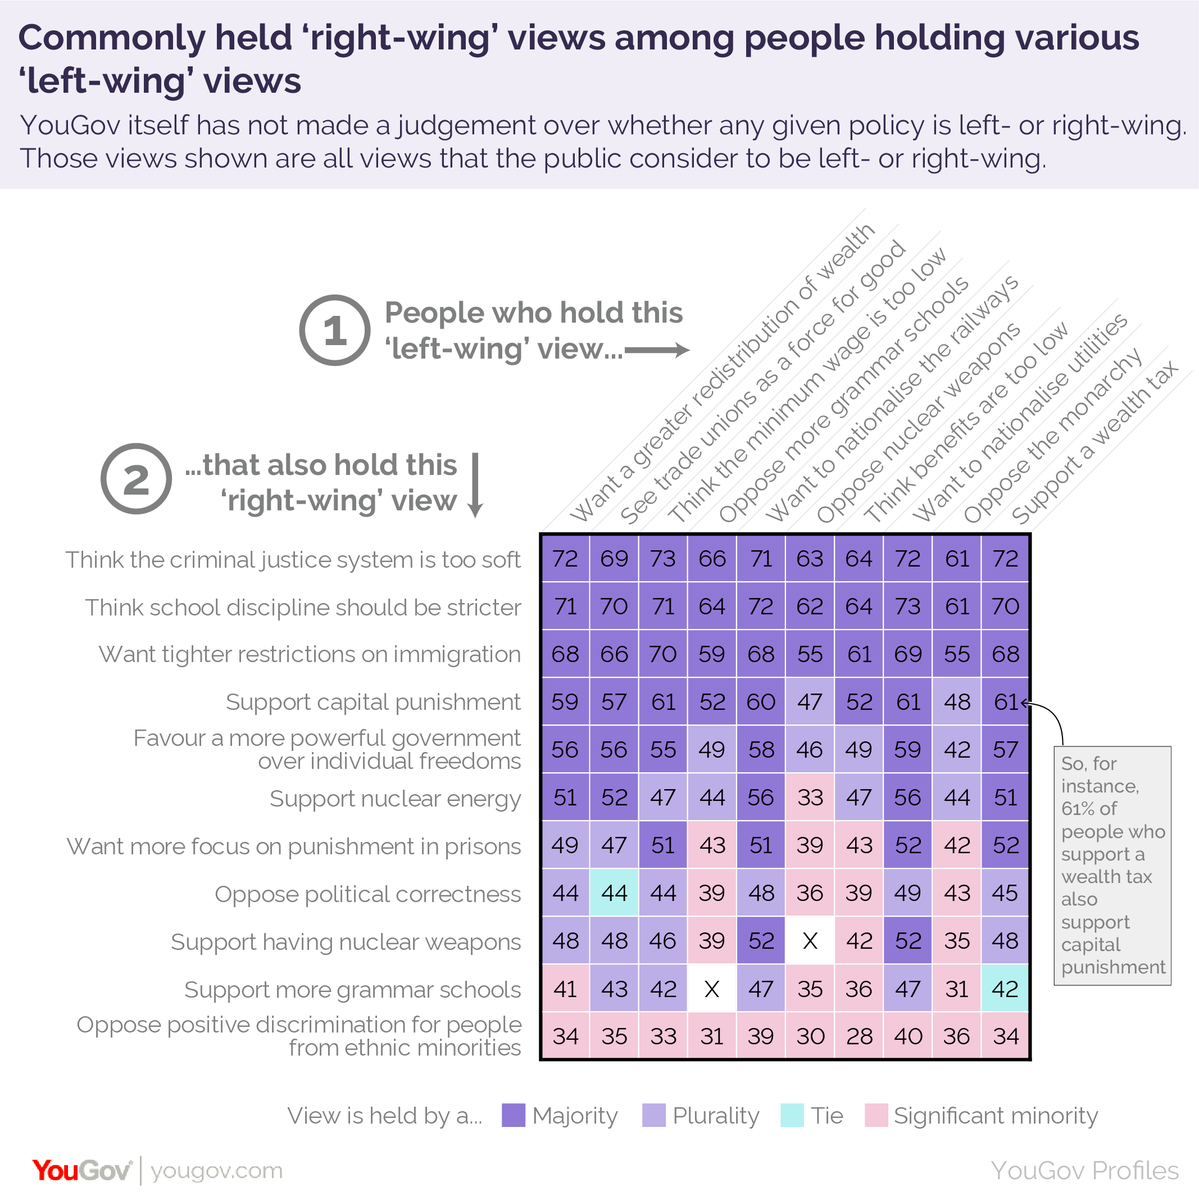 ...likewise, 68% of people who support greater redistribution of wealth also want tighter restrictions on immigration; 59% of the same group support capital punishment. https://yougov.co.uk/topics/politics/articles-reports/2019/08/14/left-wing-vs-right-wing-its-complicated?utm_source=twitter&utm_medium=website_article&utm_campaign=left_right_wing…